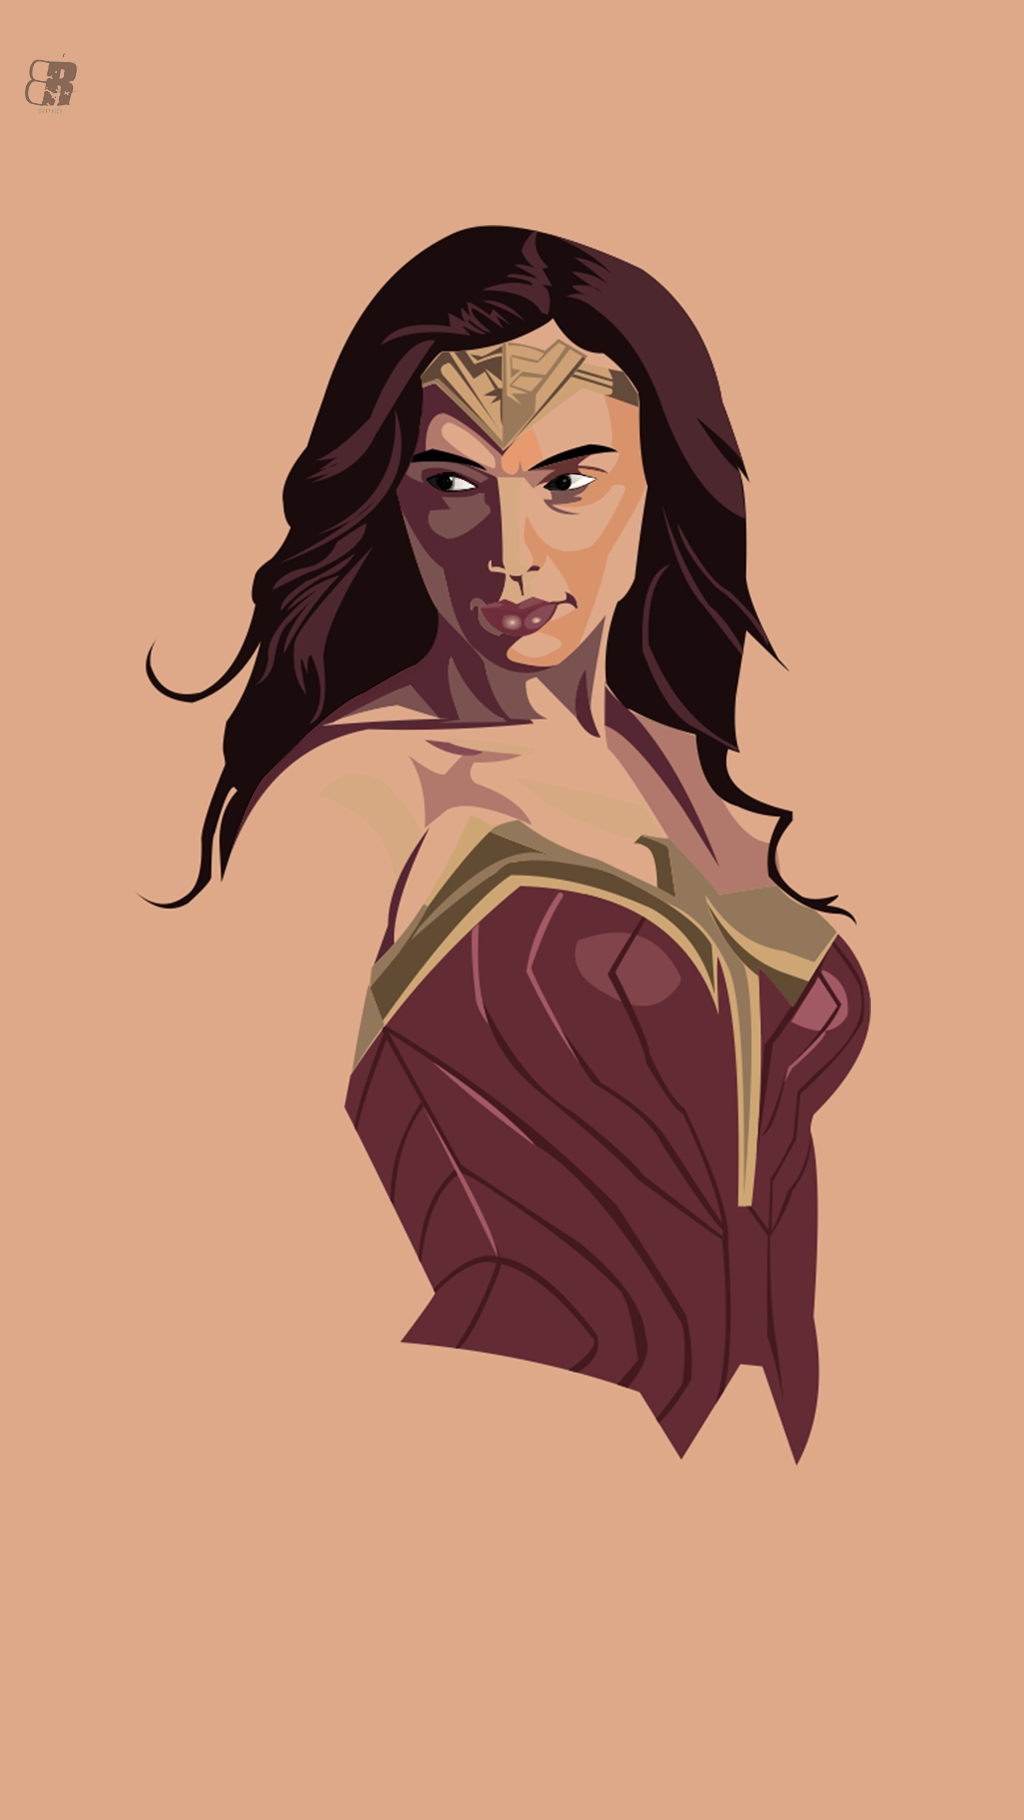 Wonder Woman Mobile Wallpaper Vector Style By Rohitbasu On Deviantart